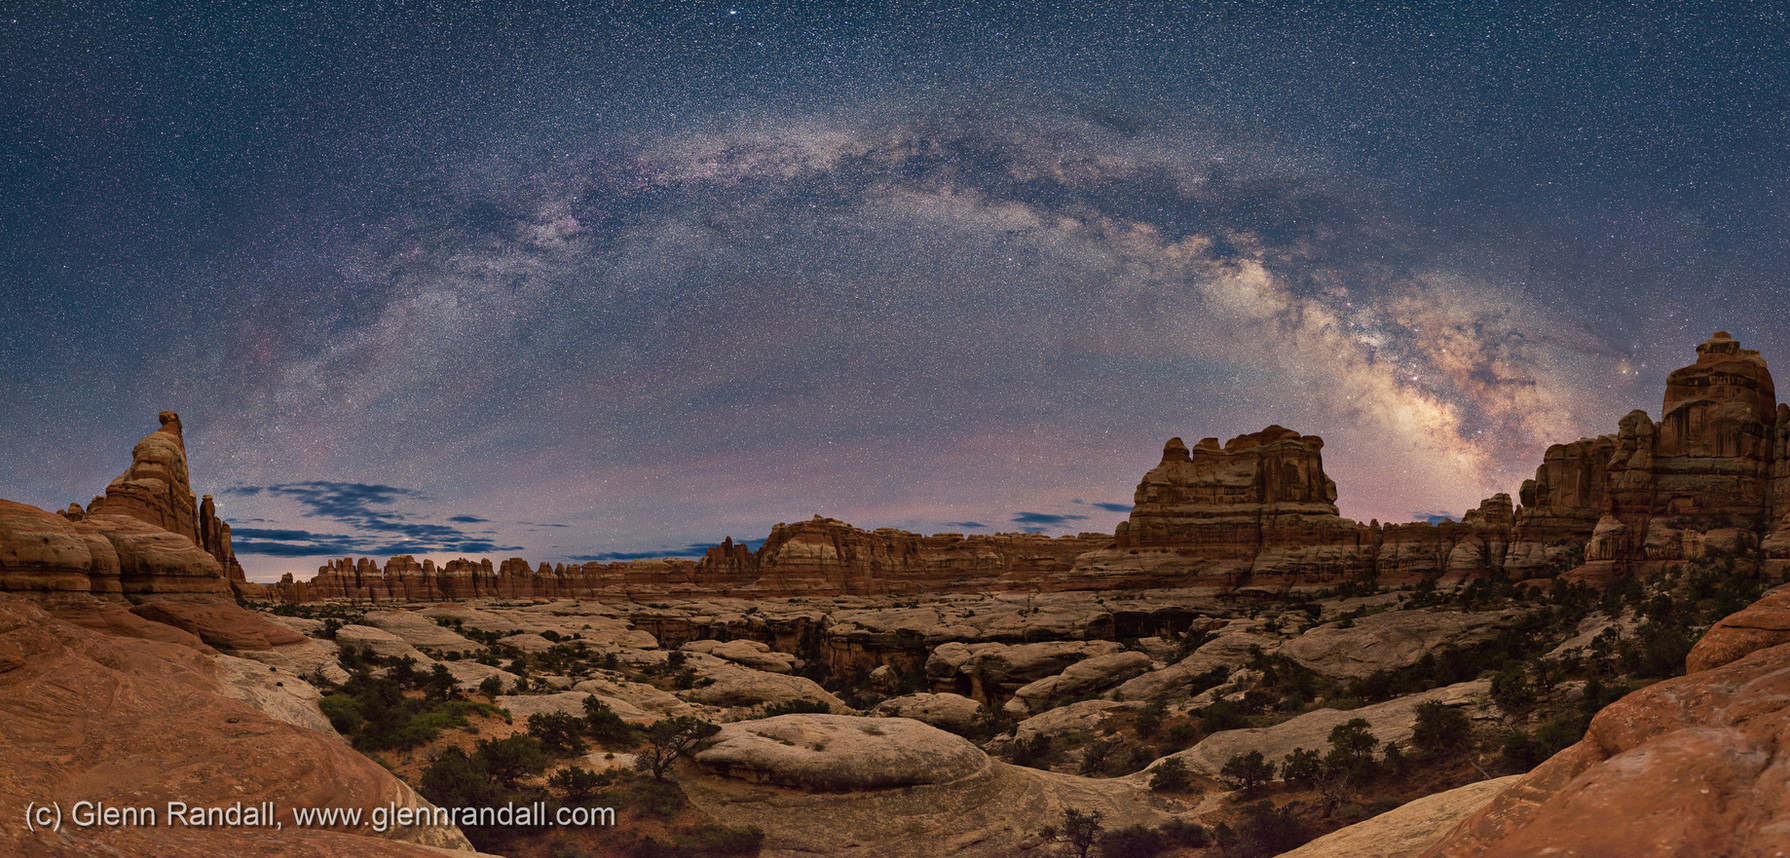 Milky Way Panorama over Elephant Canyon